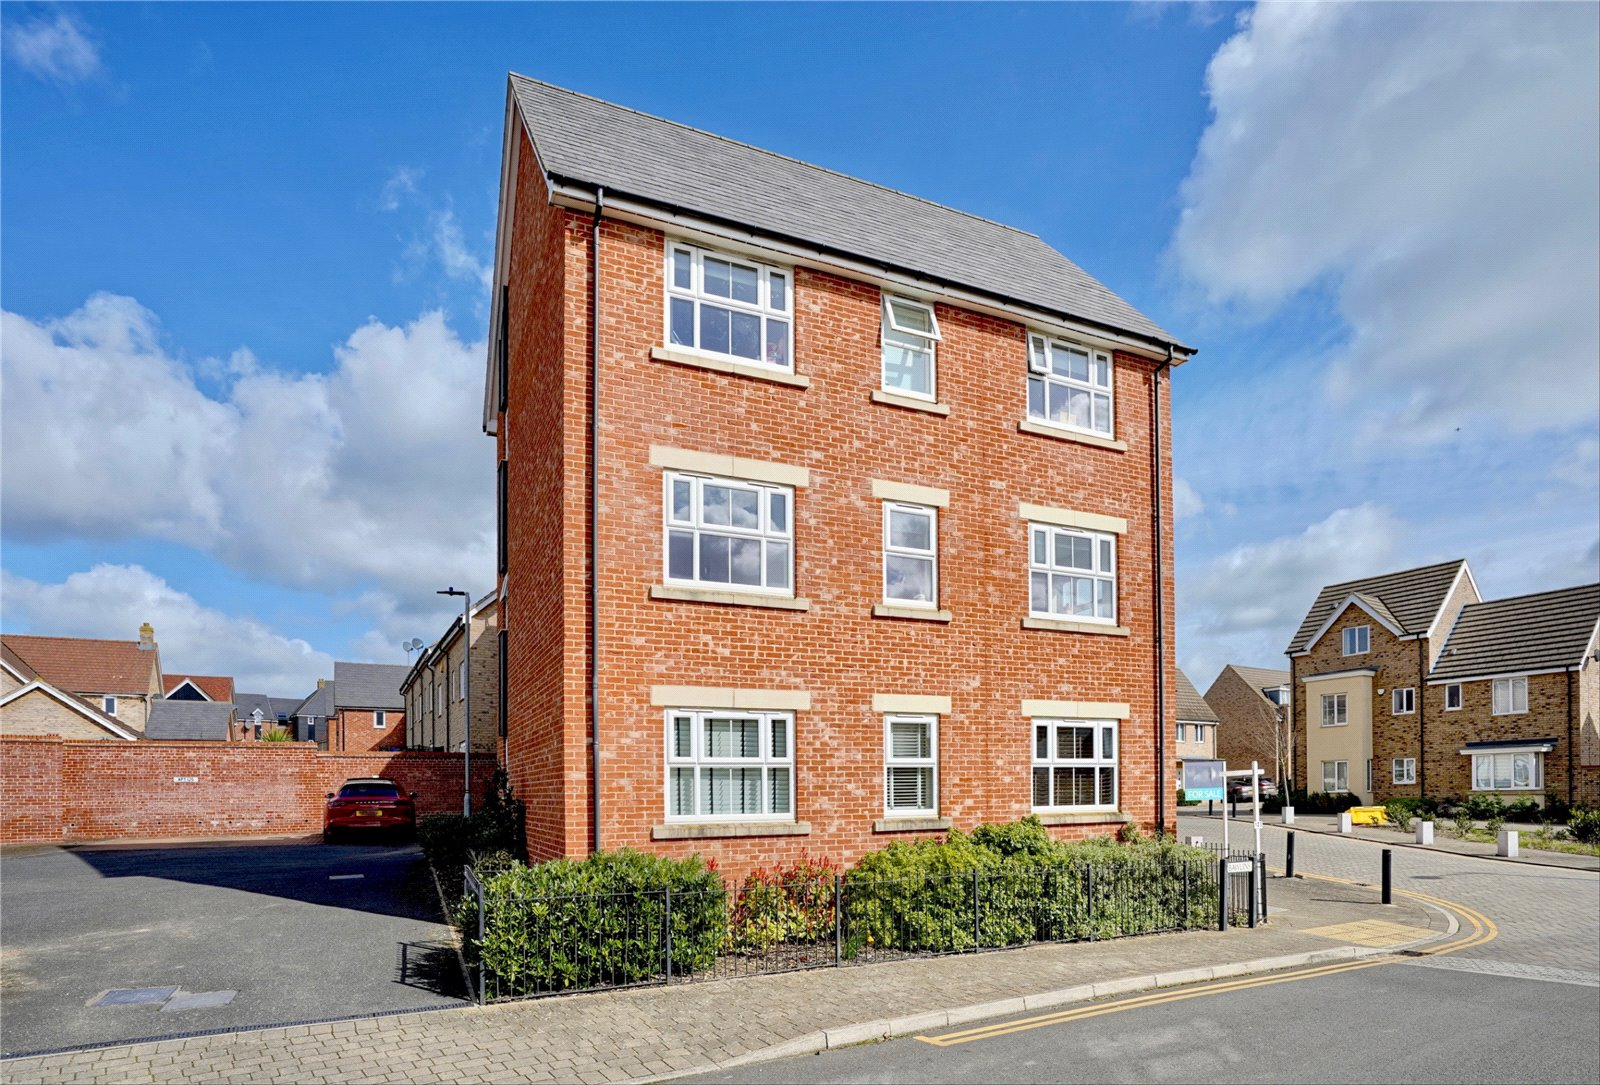 2 bed apartment for sale in St. Neots, Great High Ground, PE19 6GN, PE19